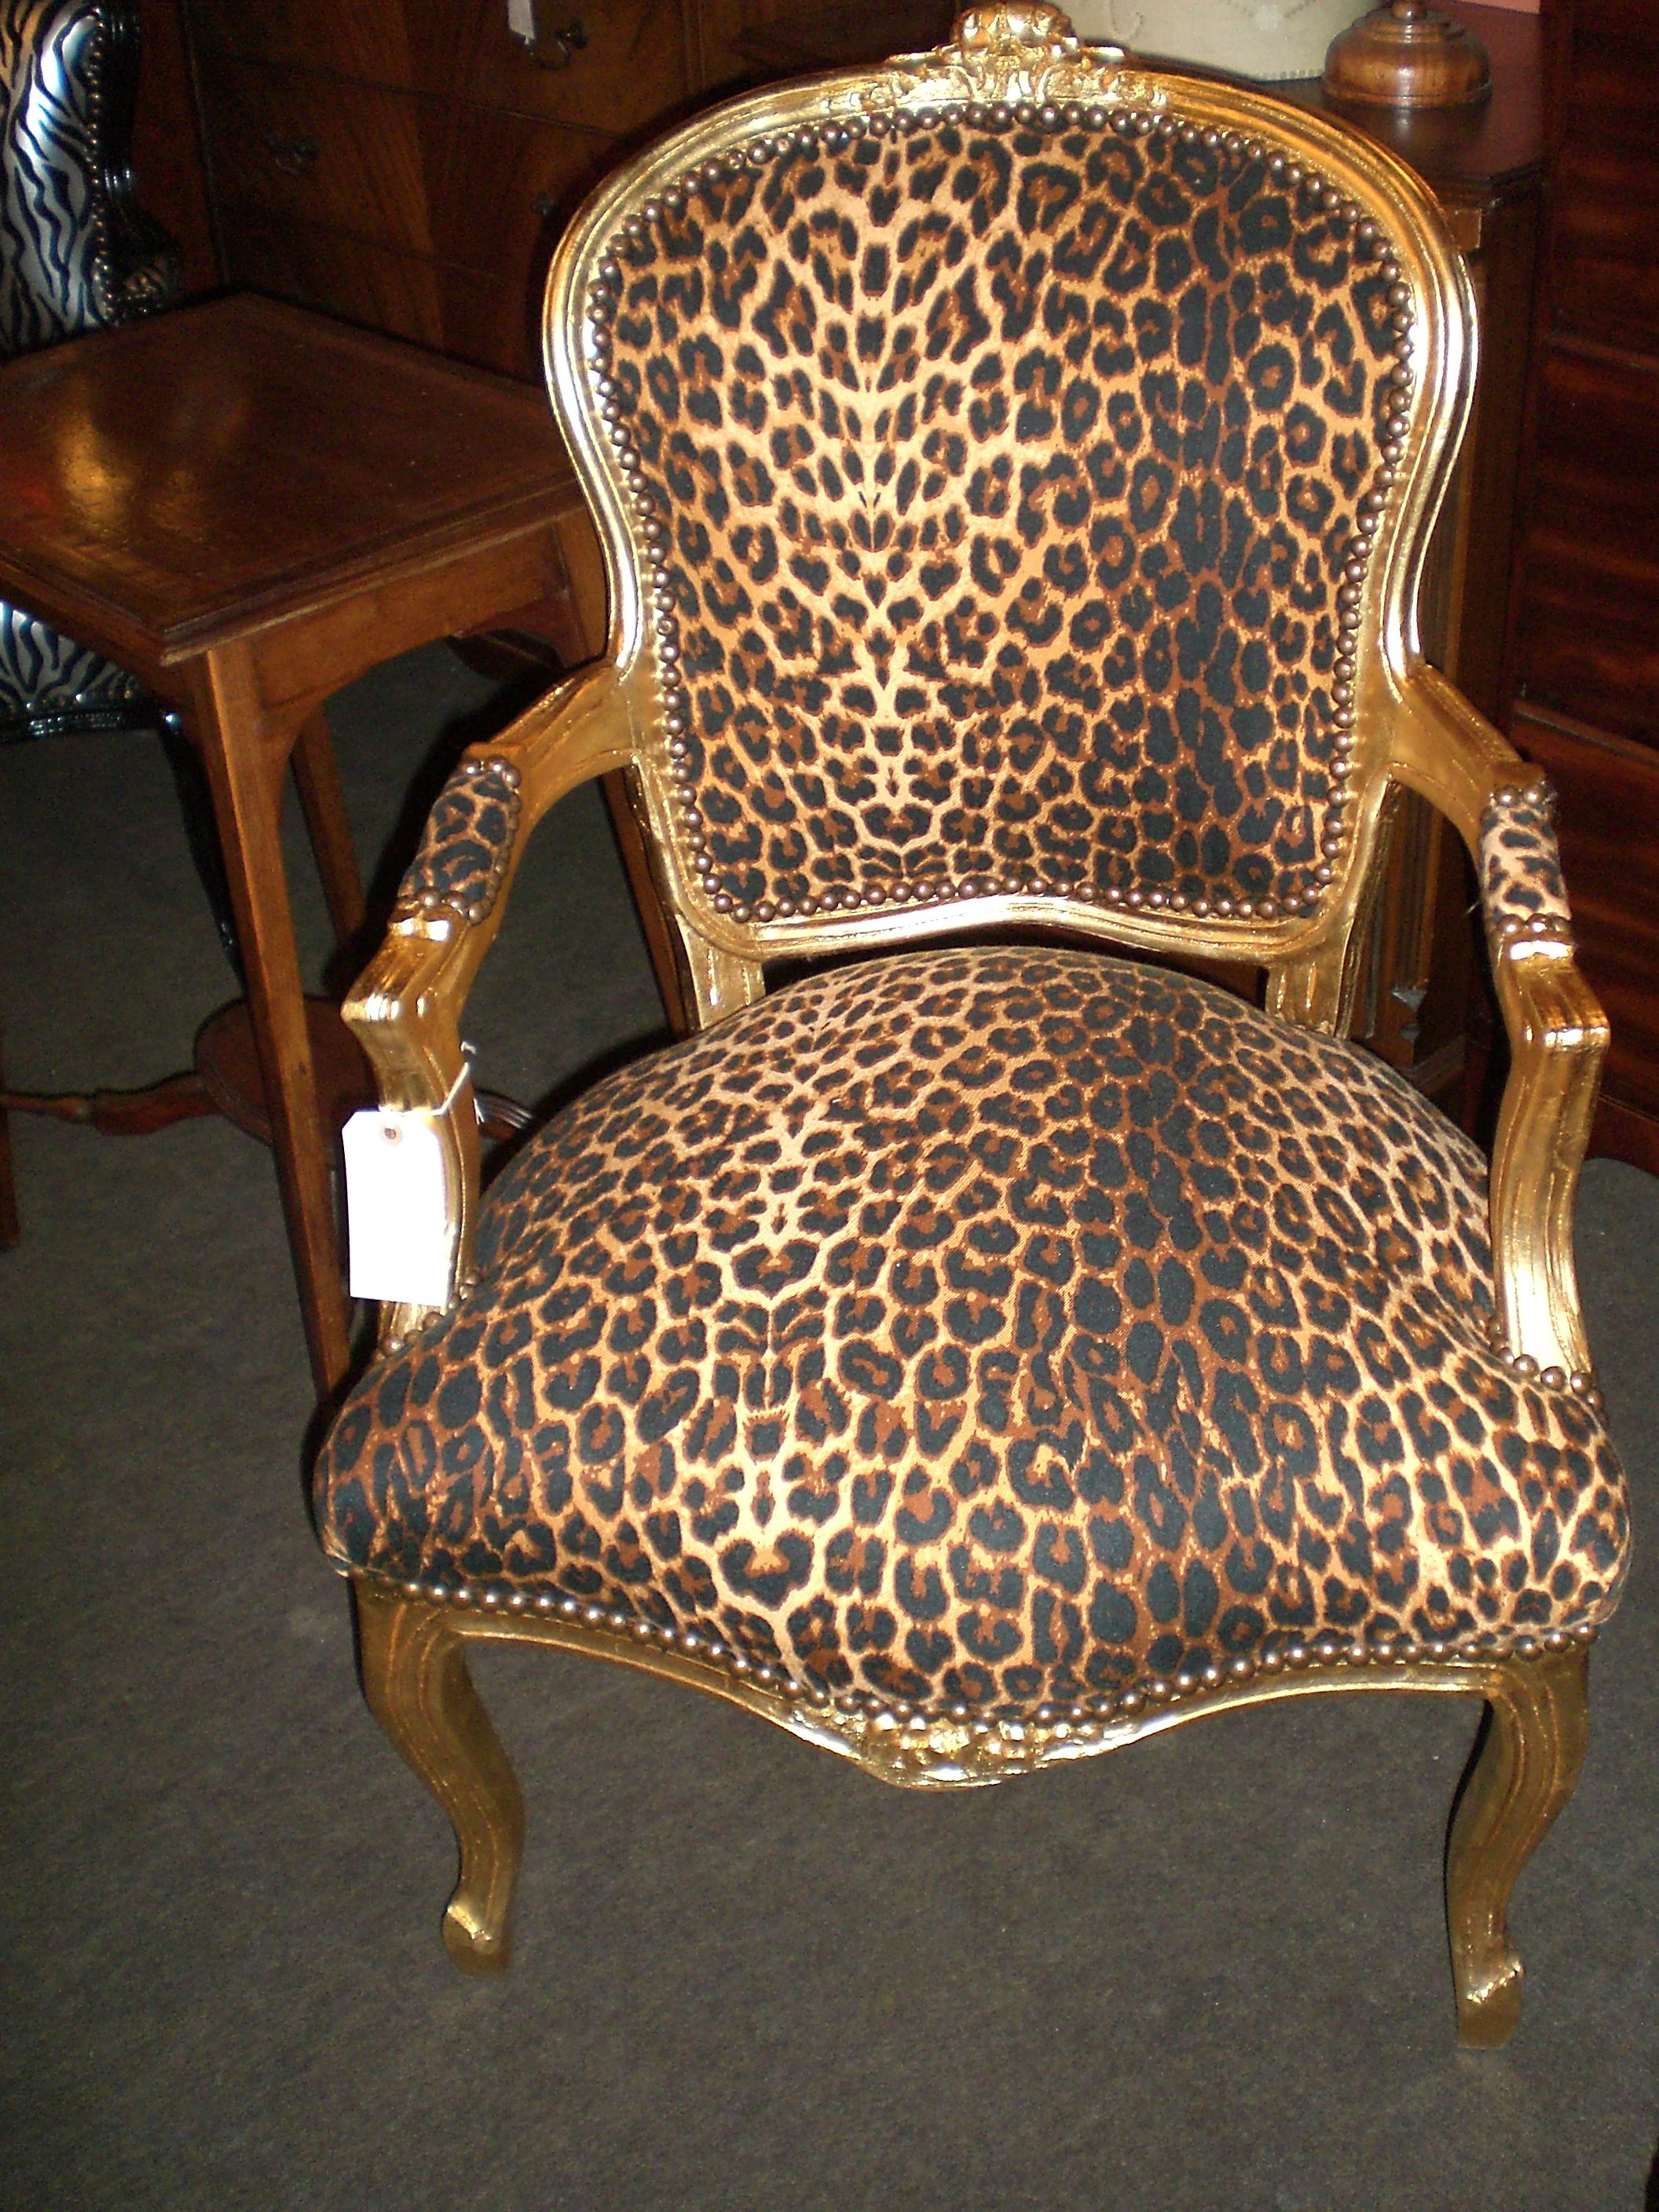 Glamorous Animal Print Accent Chairs Collection Fascinating Leopard Print Fabric Chair Design